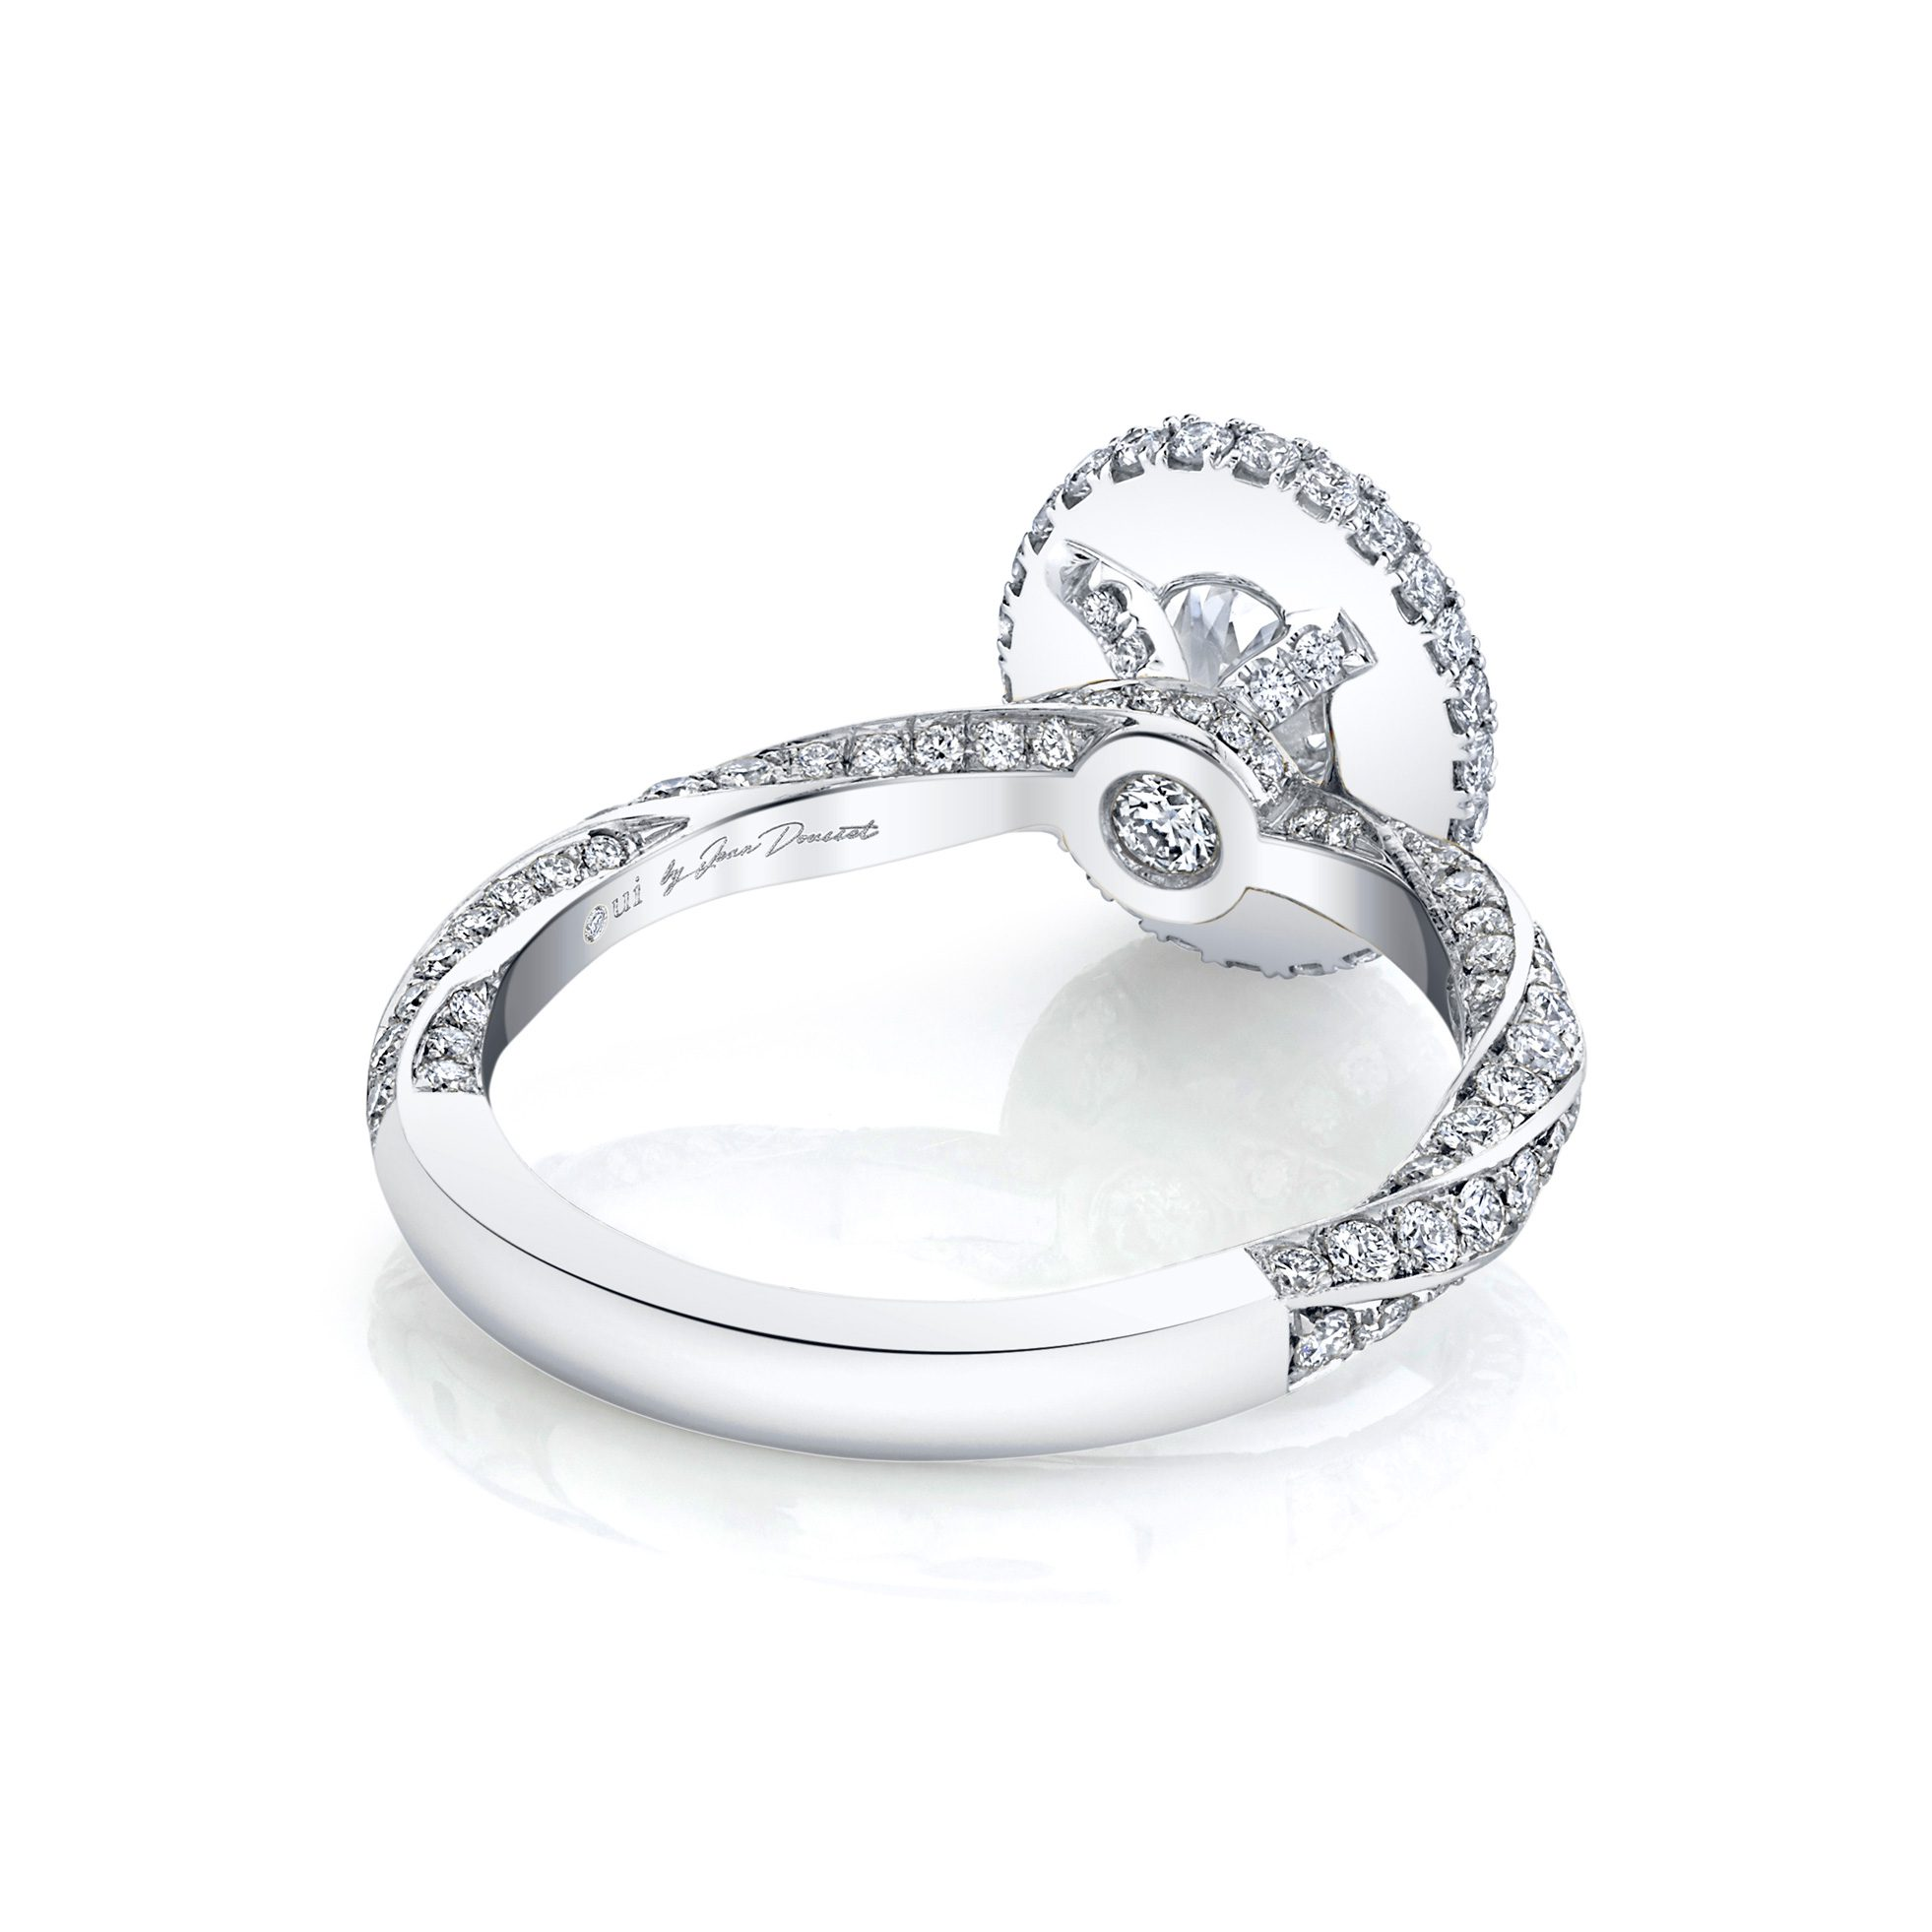 Camille Oval Seamless Halo® Engagement Ring with diamond pavé in 18k White Gold Back View by Oui by Jean Dousset